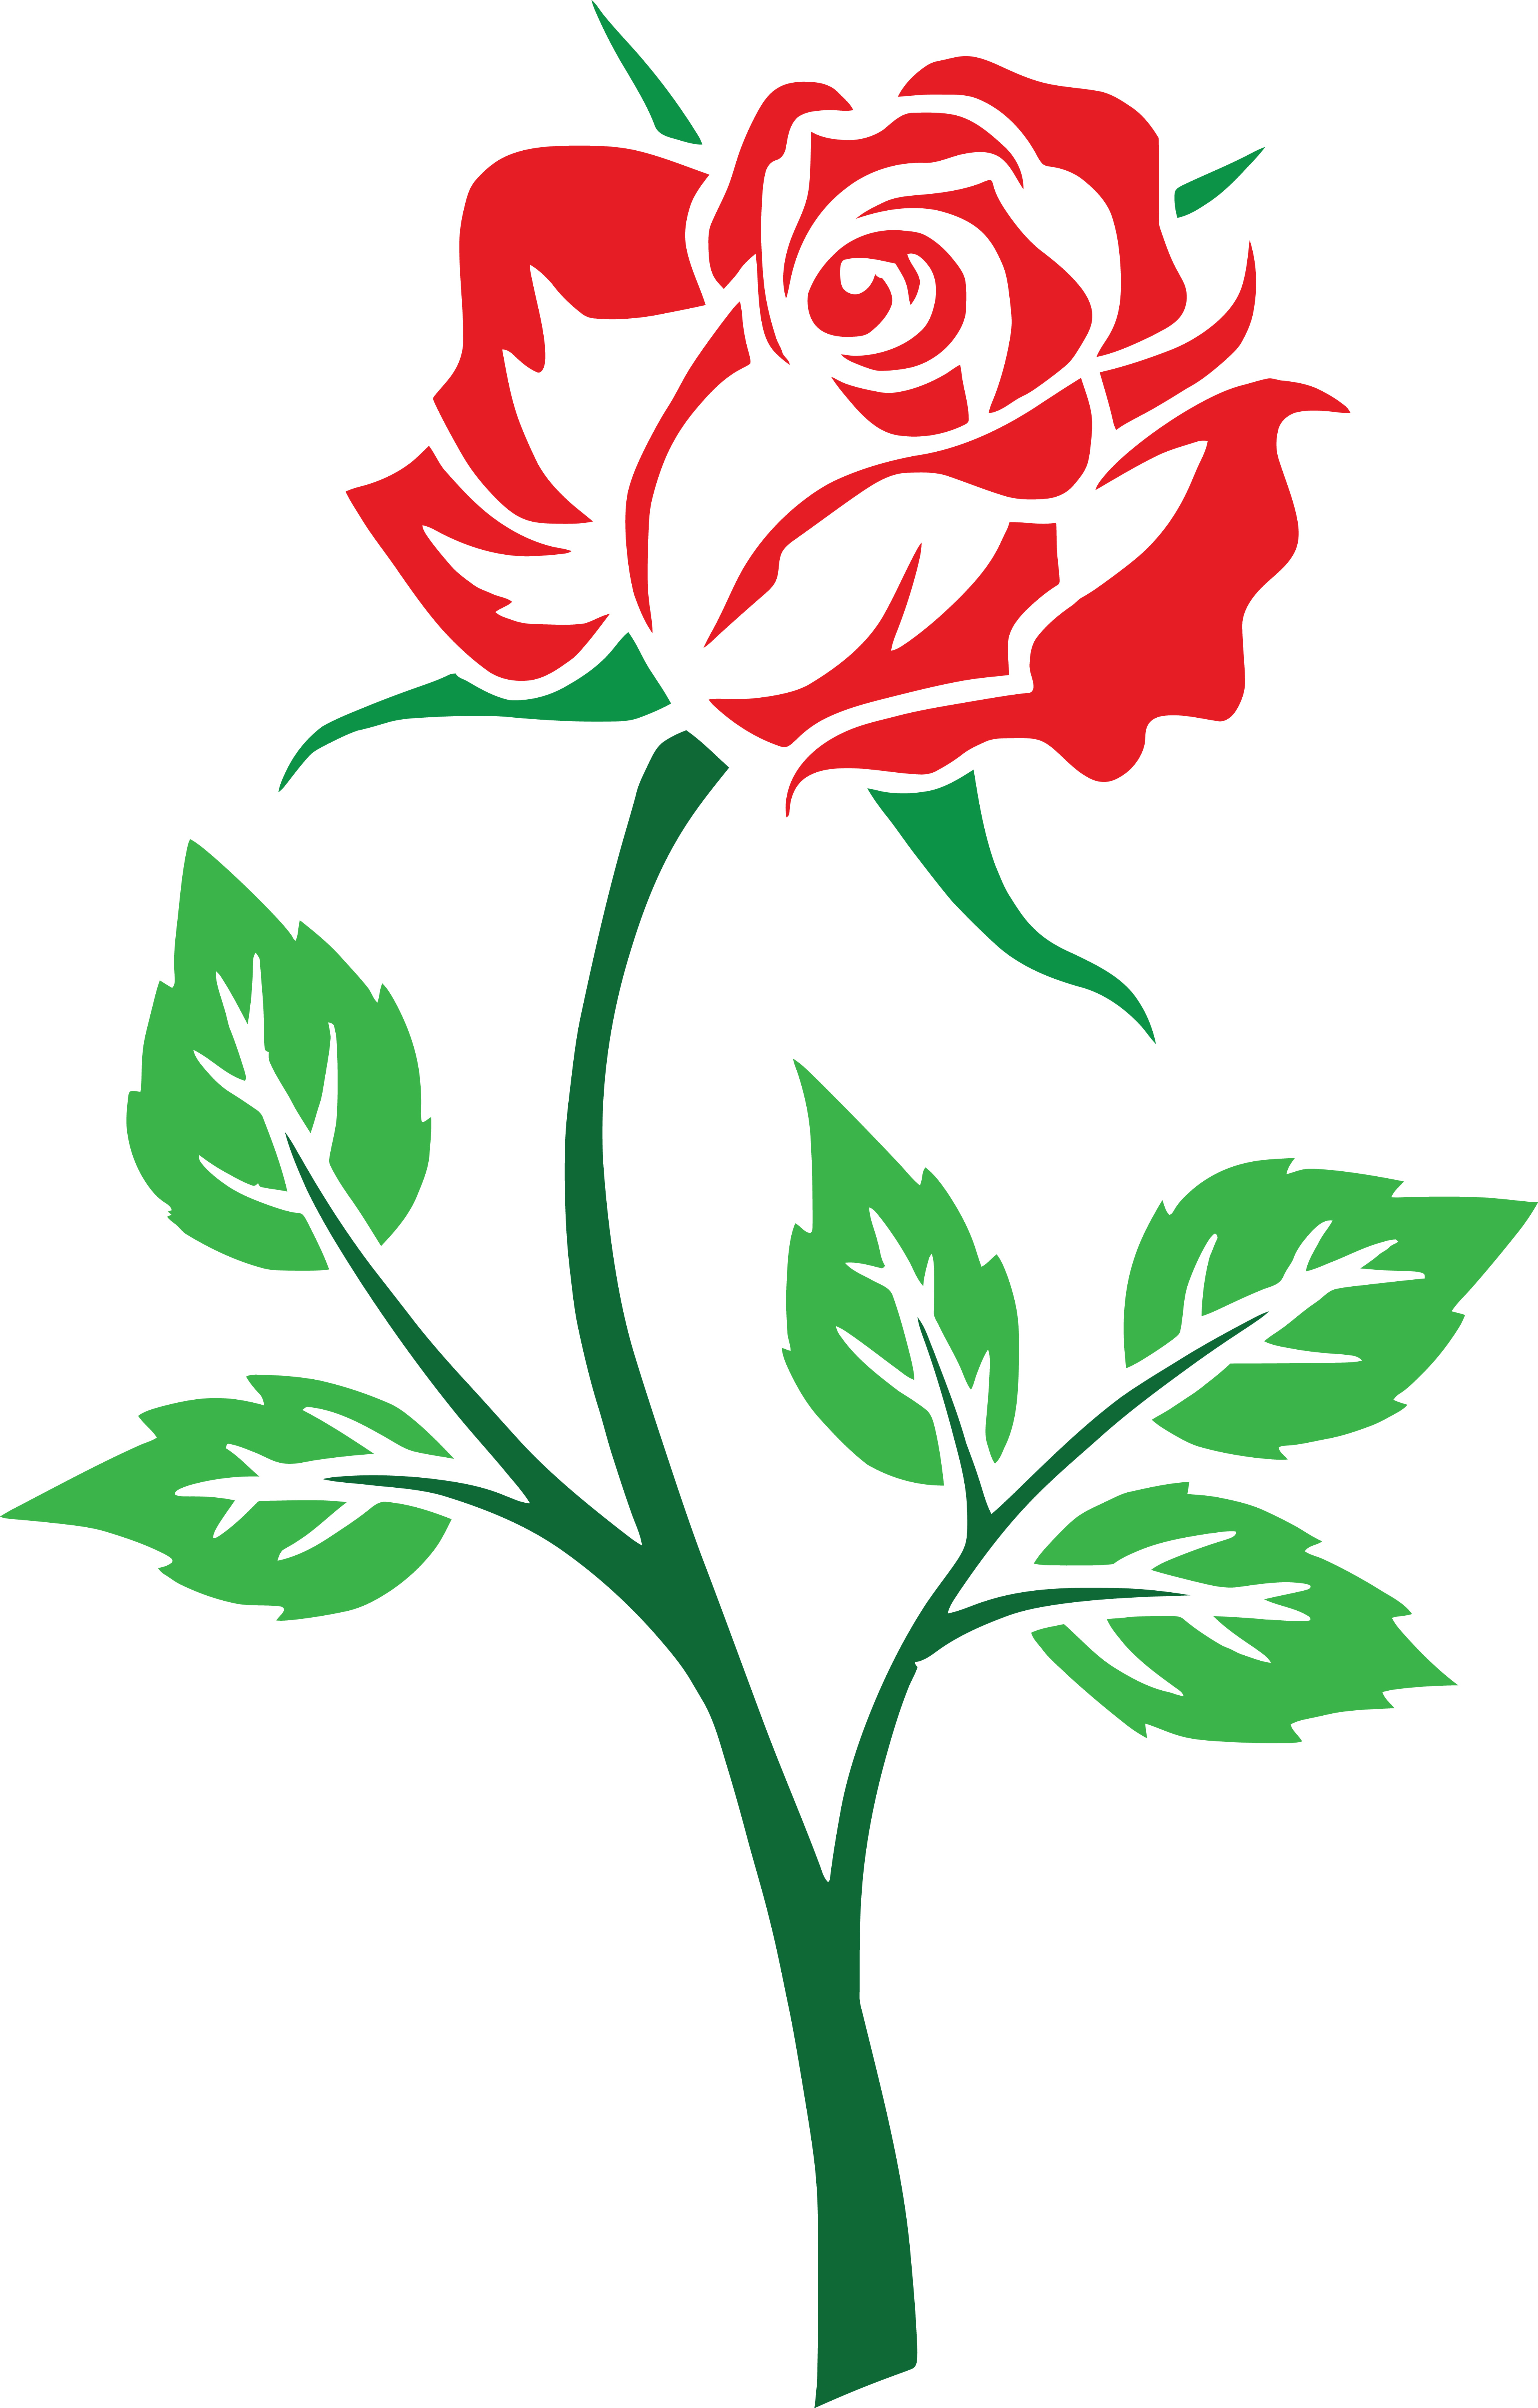 1277 Red Rose free clipart.